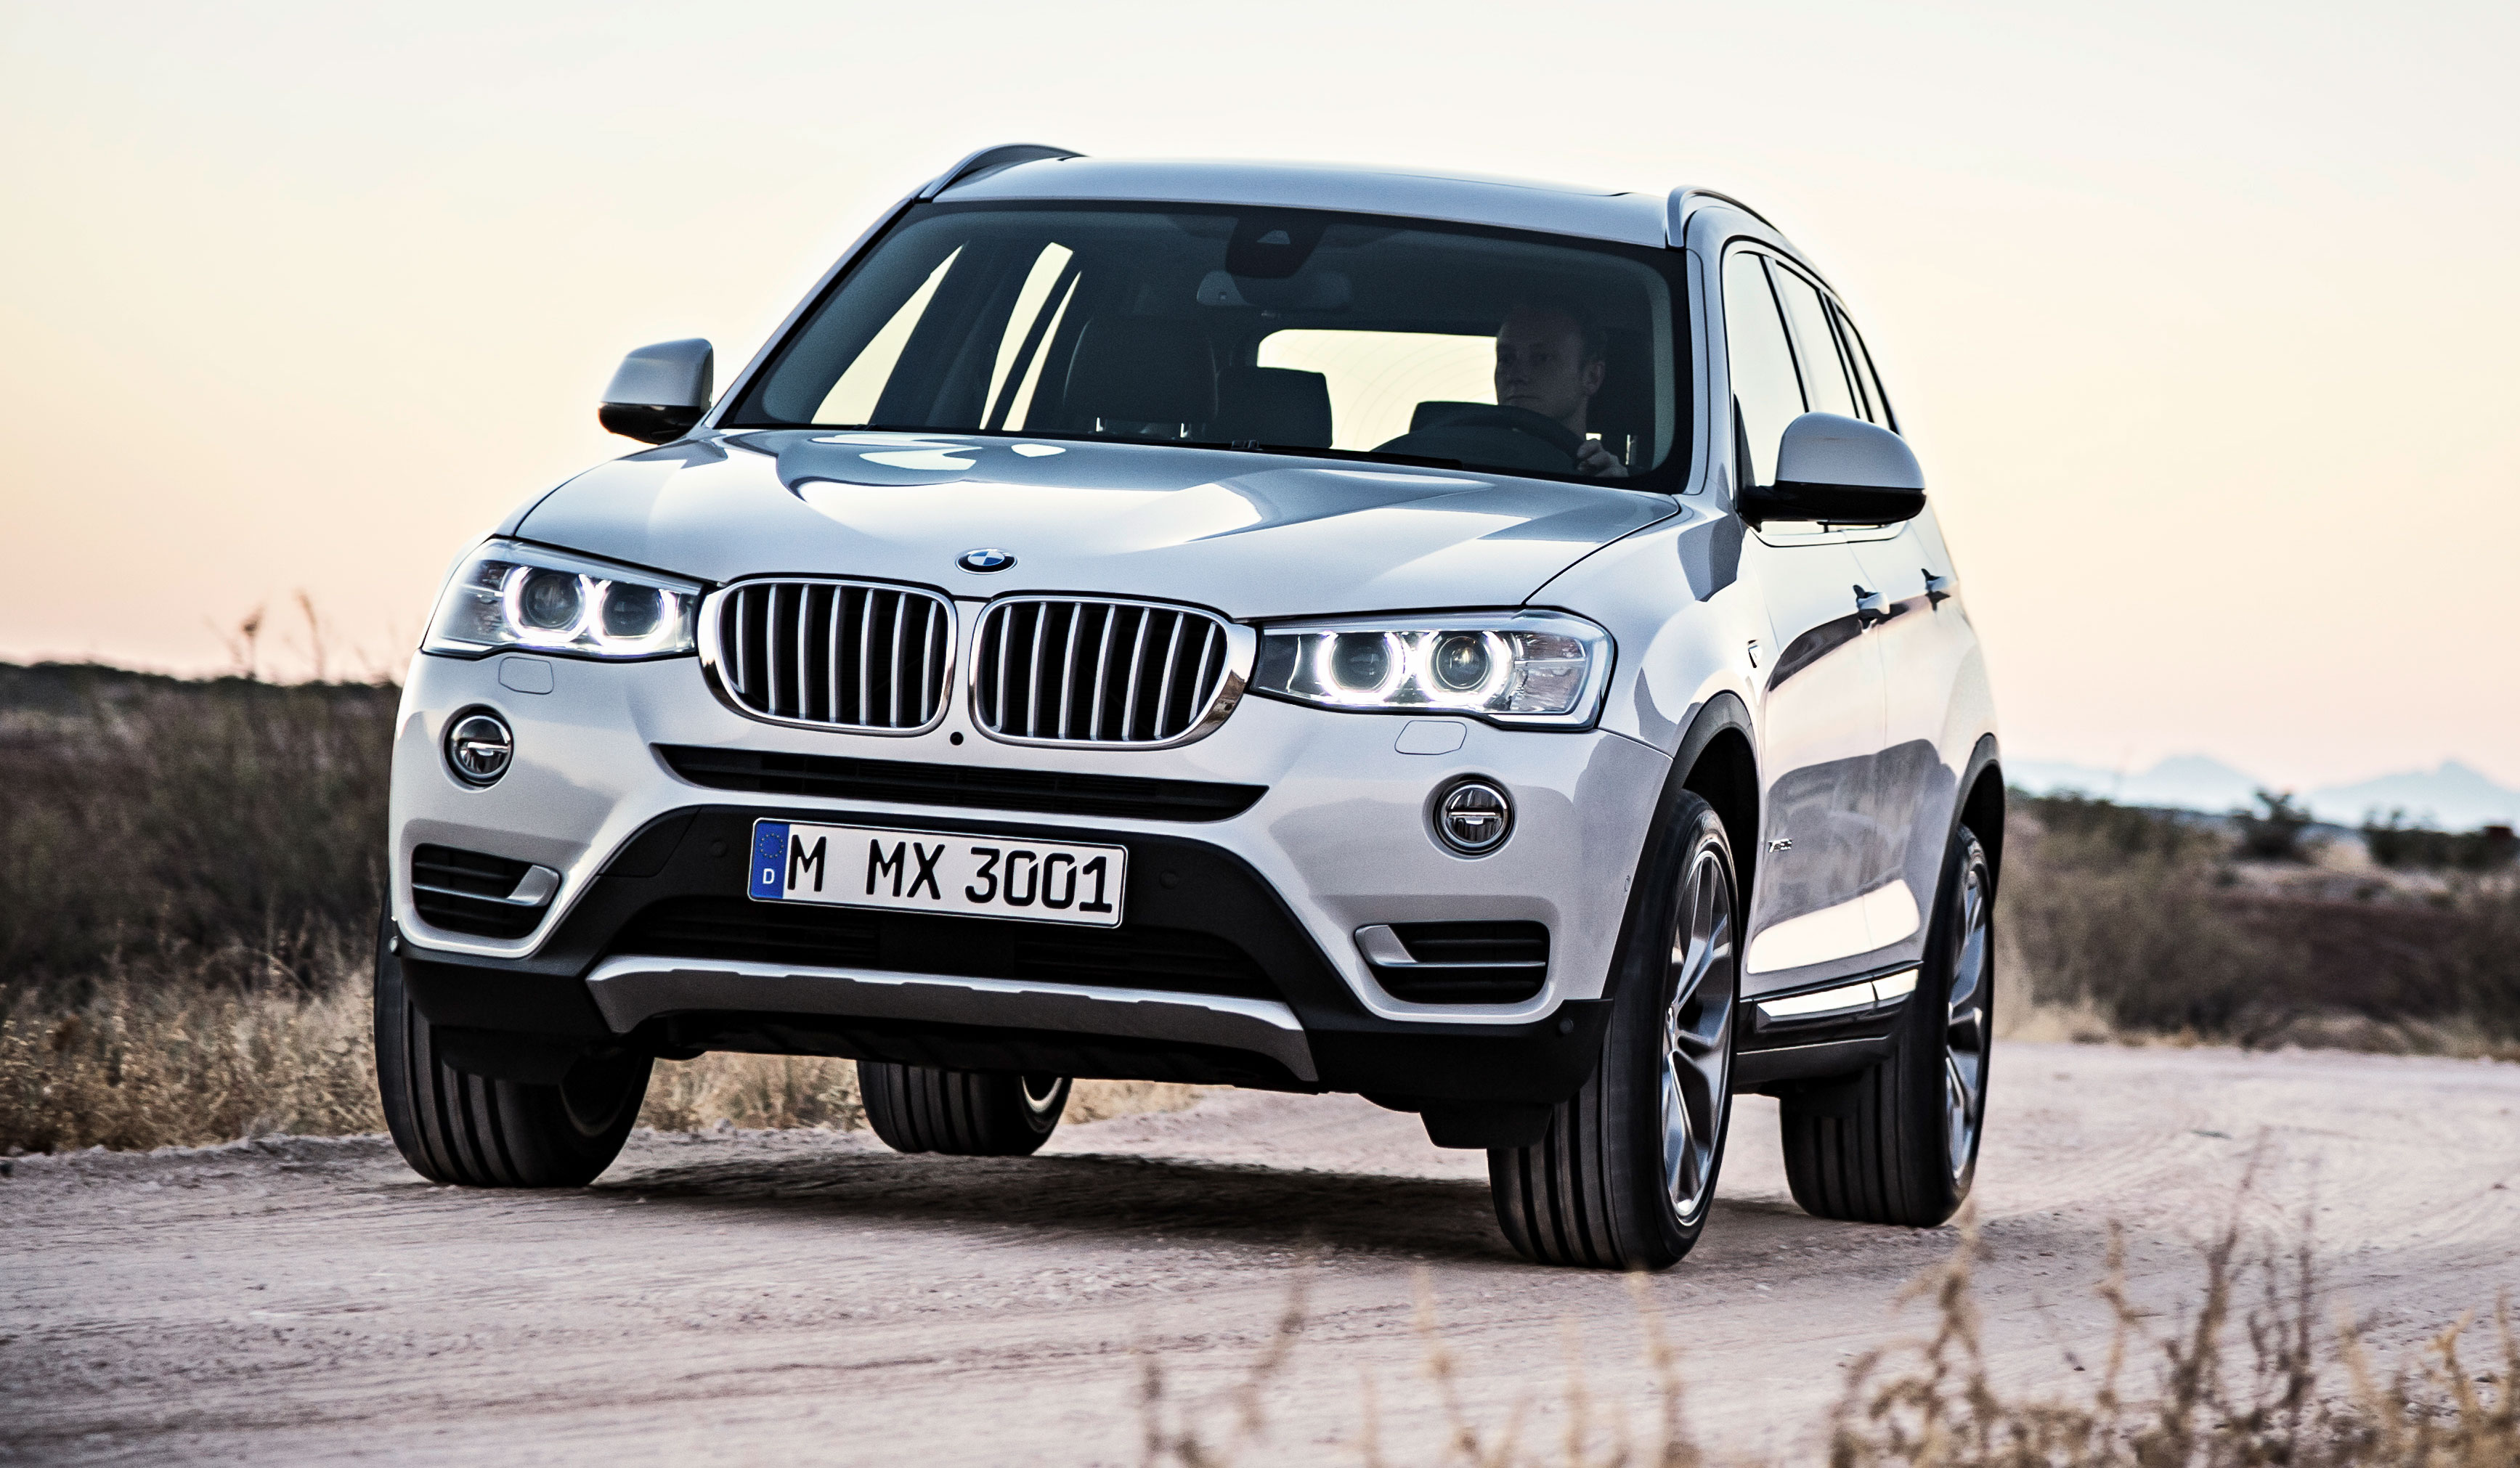 2014 Bmw X3 Lci Unveiled The F25 Gets Facelifted Image